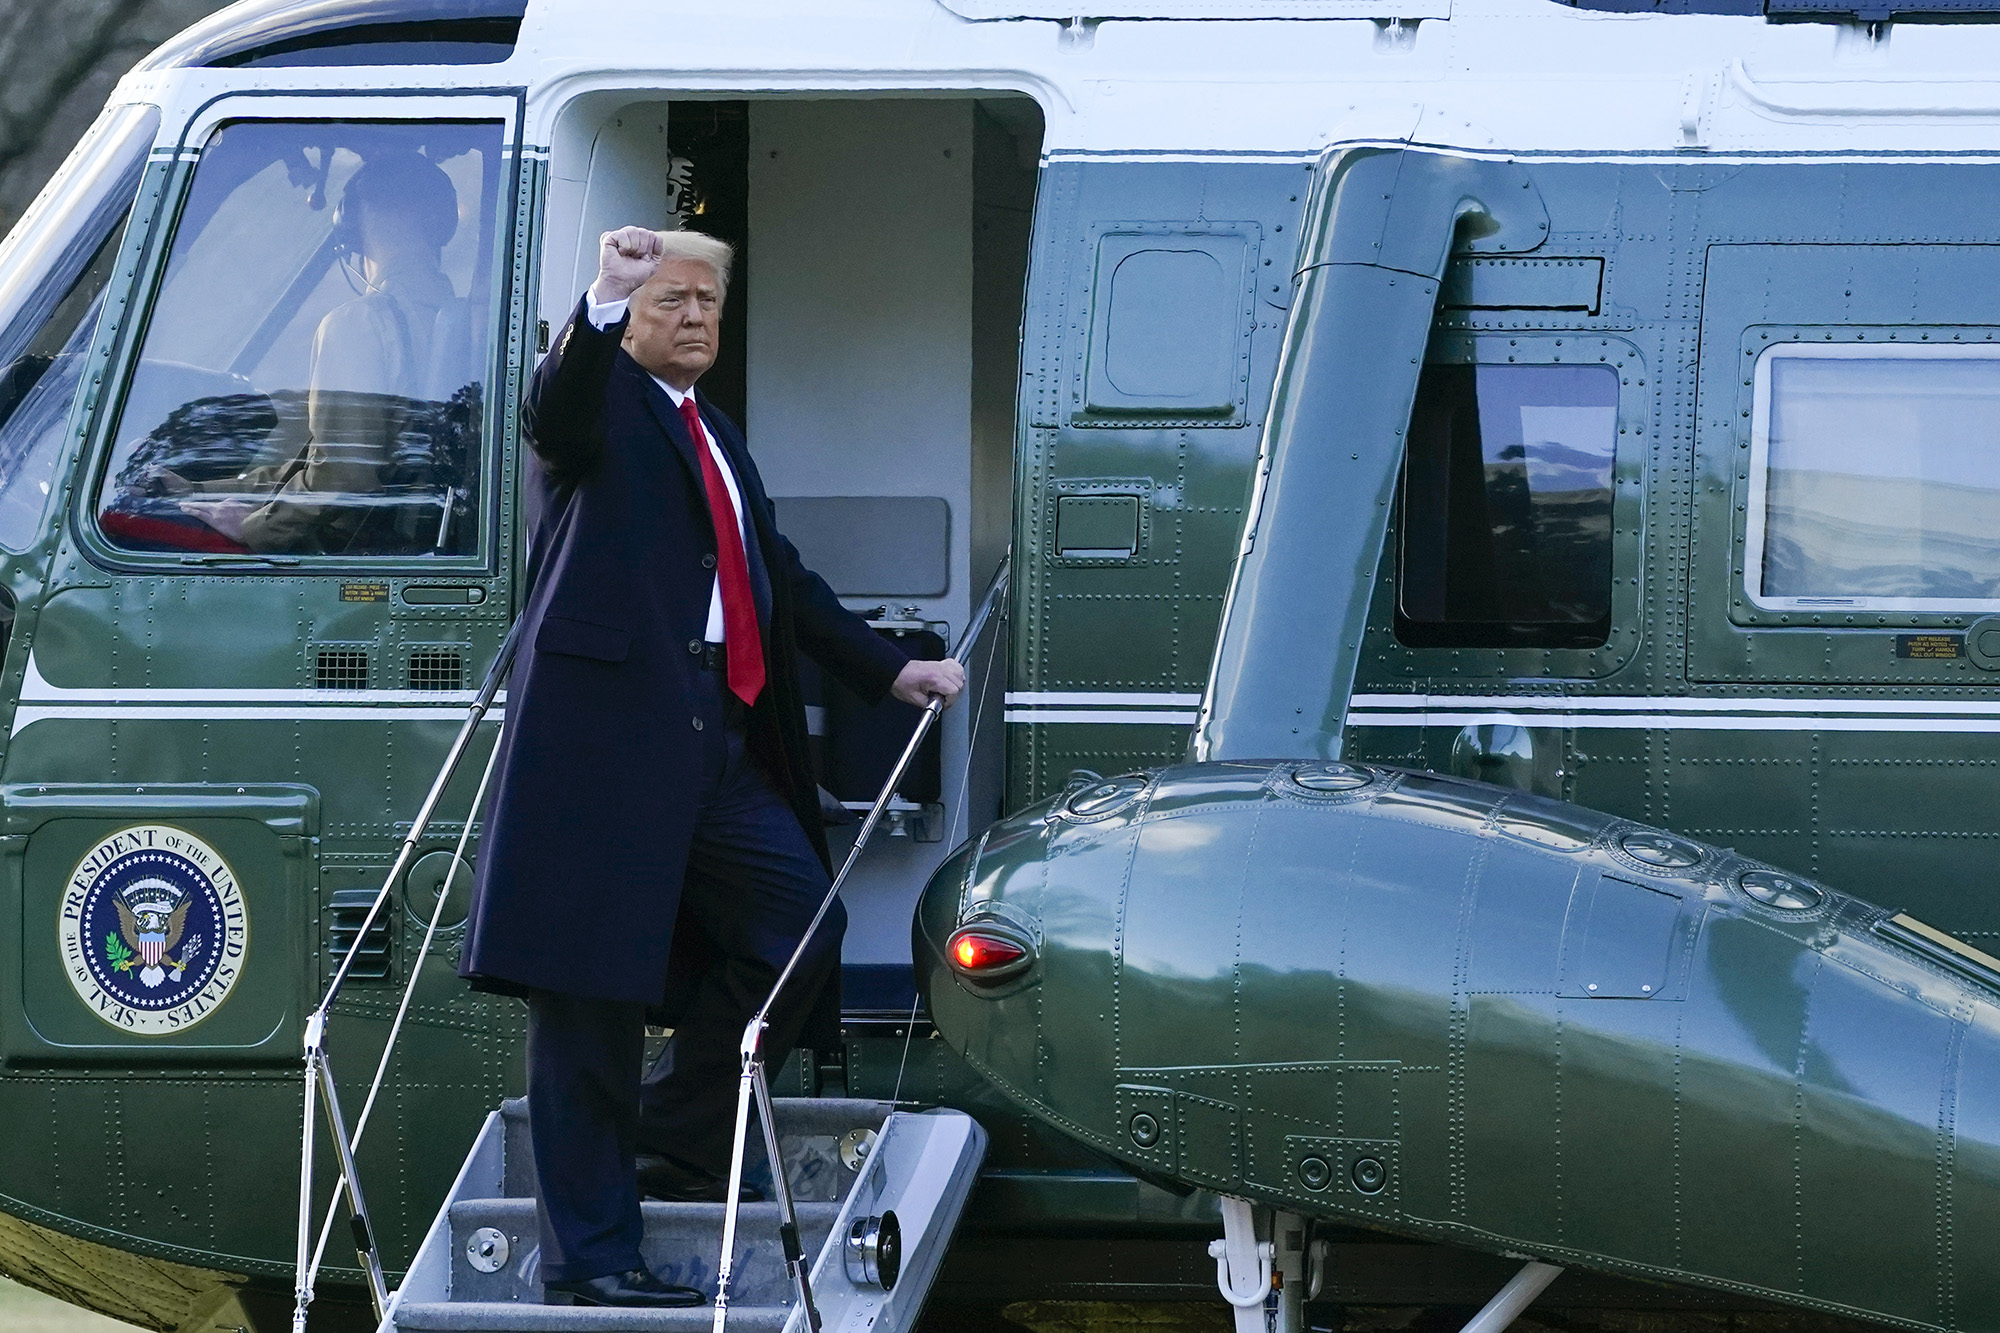 President Donald Trump gestures as he boards Marine One on the South Lawn of the White House, Wednesday, Jan. 20, 2021, in Washington. Trump is en route to his Mar-a-Lago Florida Resort. (Alex Brandon/AP)